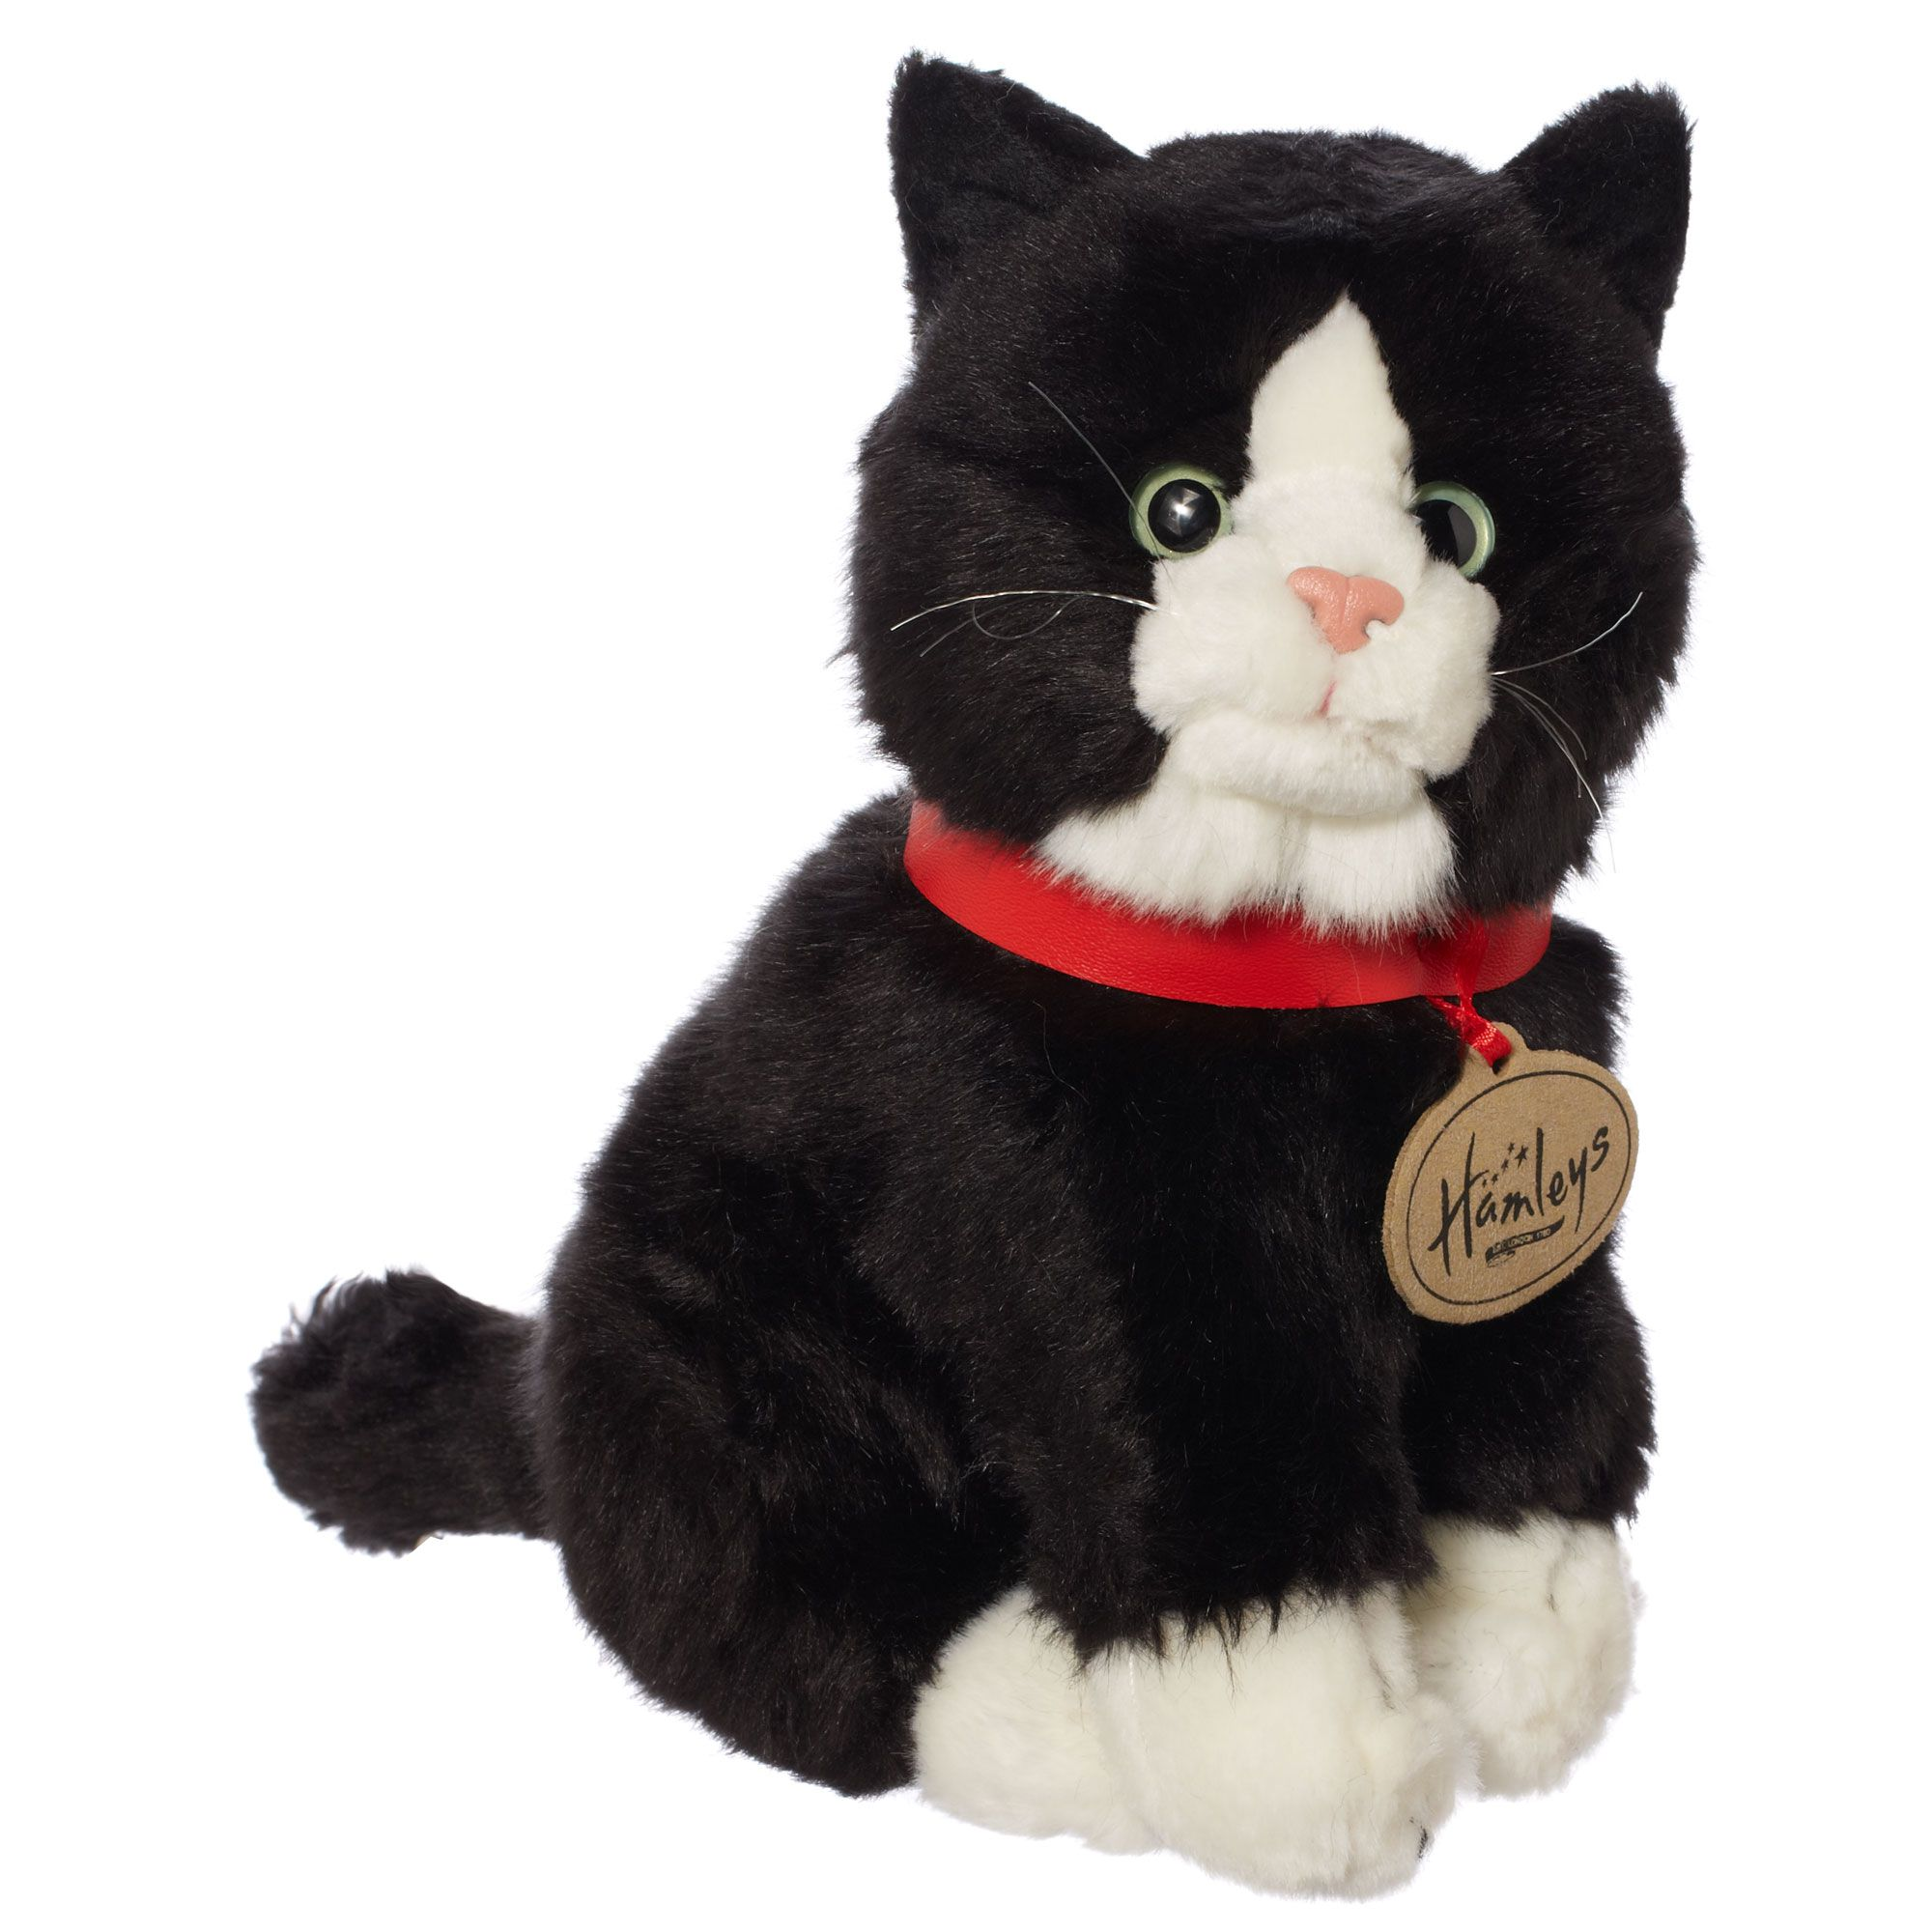 Hamleys Sitting Black Cat Soft Toy